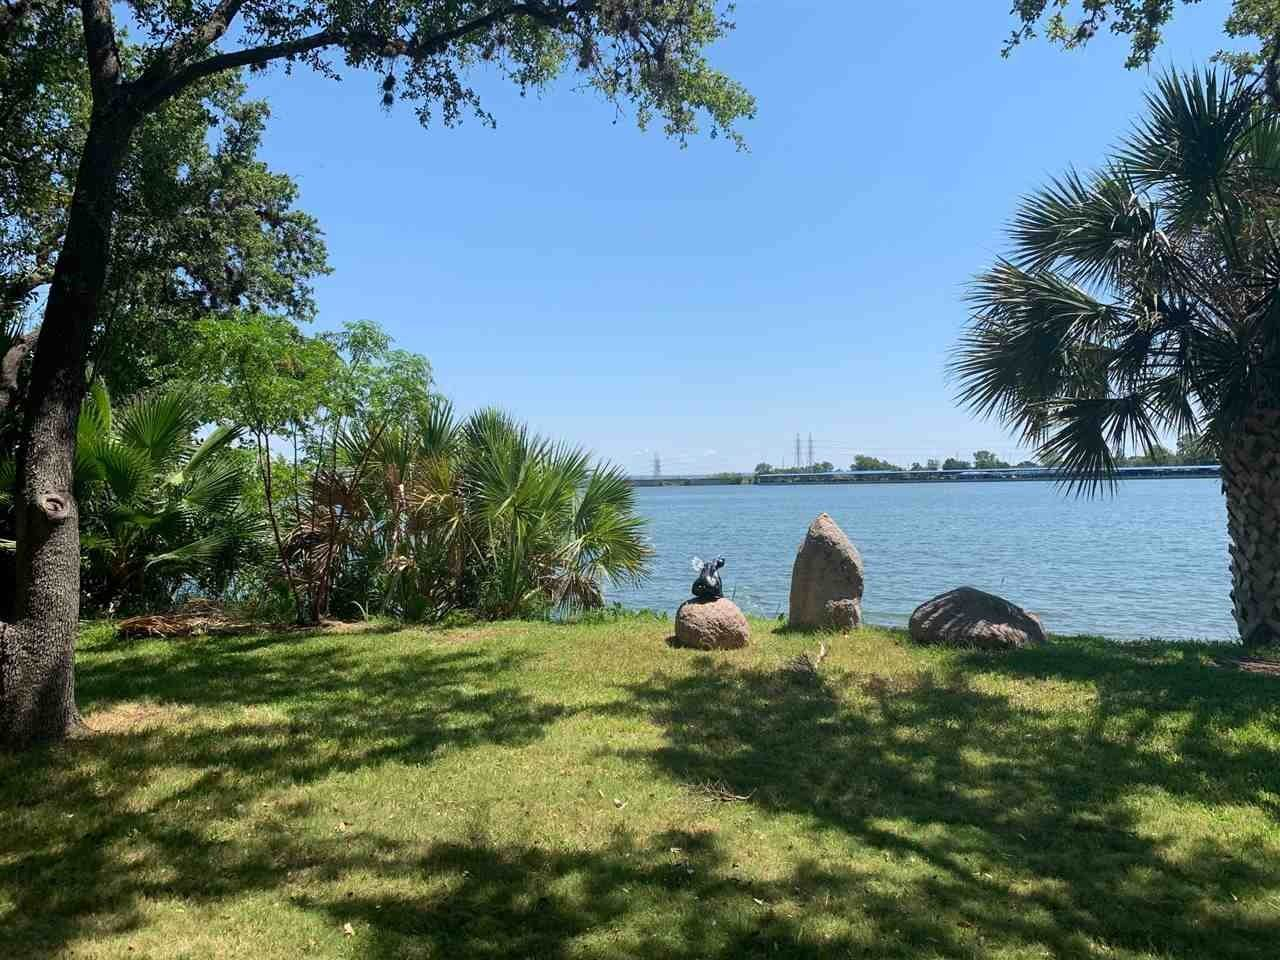 Property for Sale at Lot 4 Estate Drive Horseshoe Bay, Texas 78657 United States